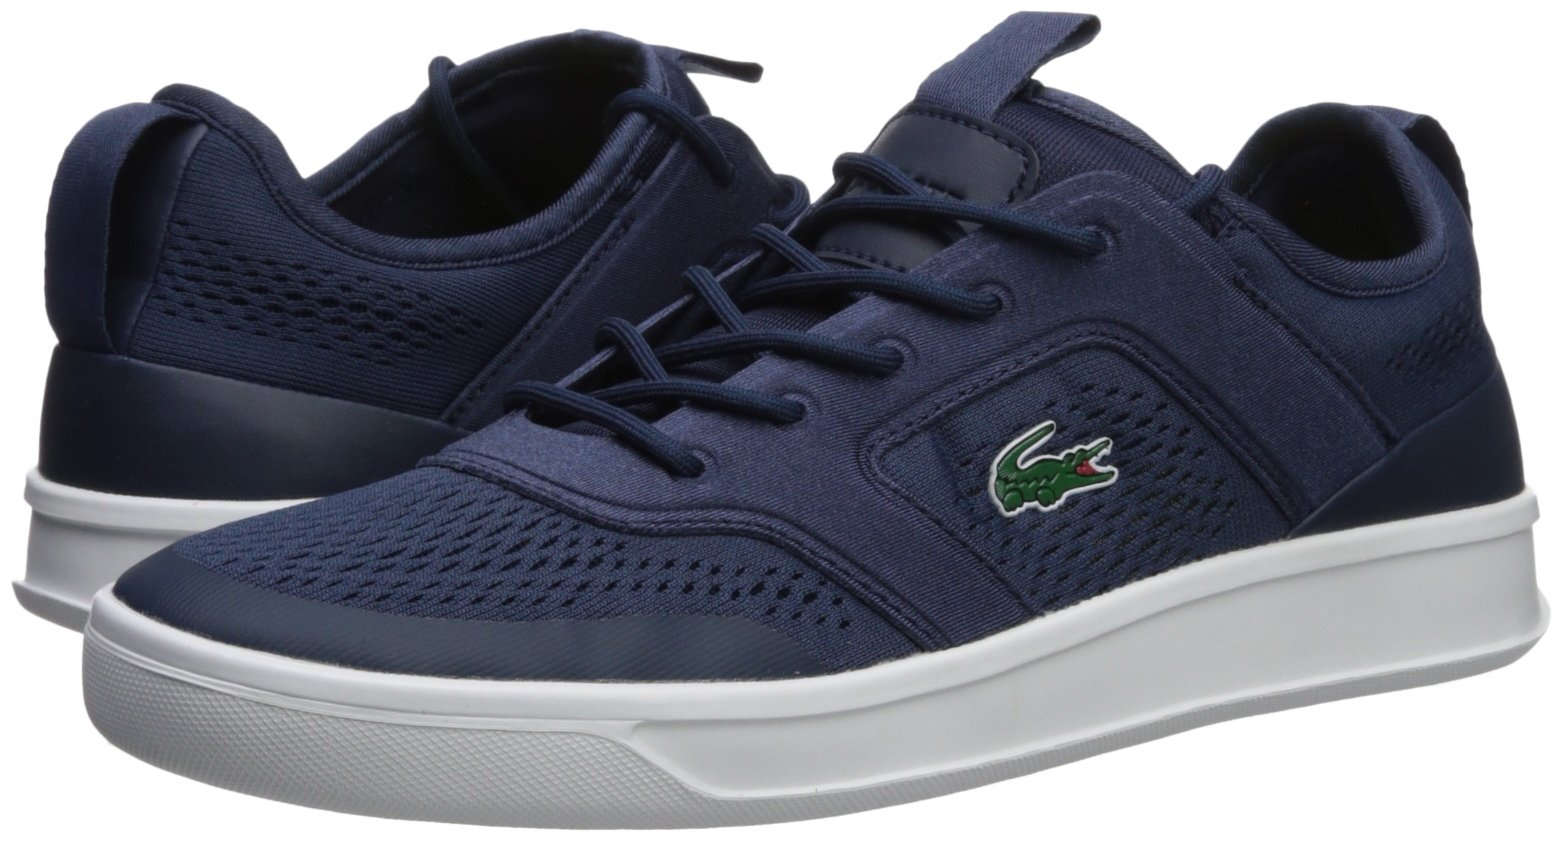 Lacoste Men's Explorateur Sport Sneaker, Navy, 9.5 M US by Lacoste (Image #6)